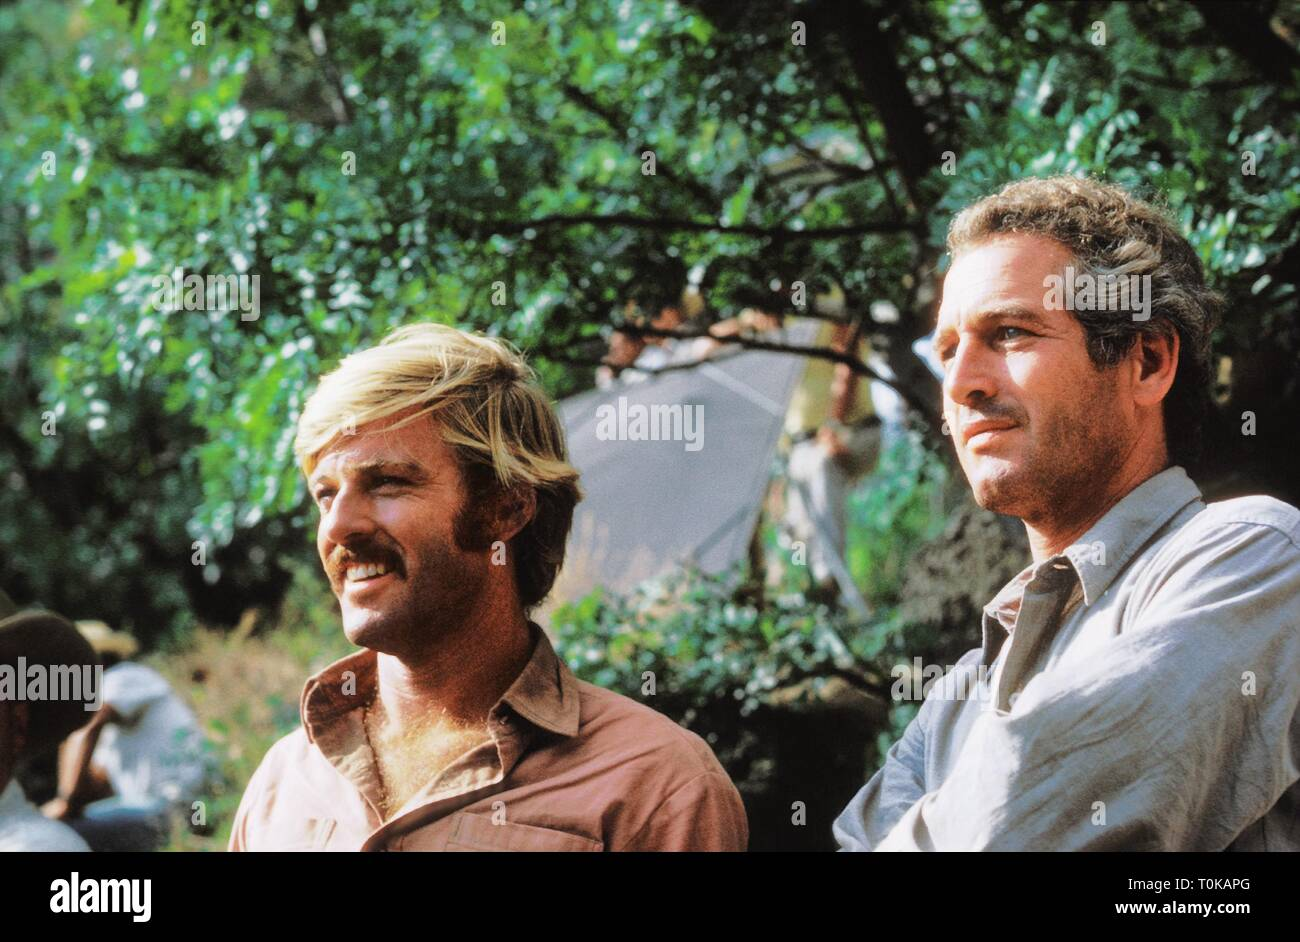 ROBERT REDFORD, PAUL NEWMAN, BUTCH CASSIDY AND THE SUNDANCE KID, 1969 - Stock Image